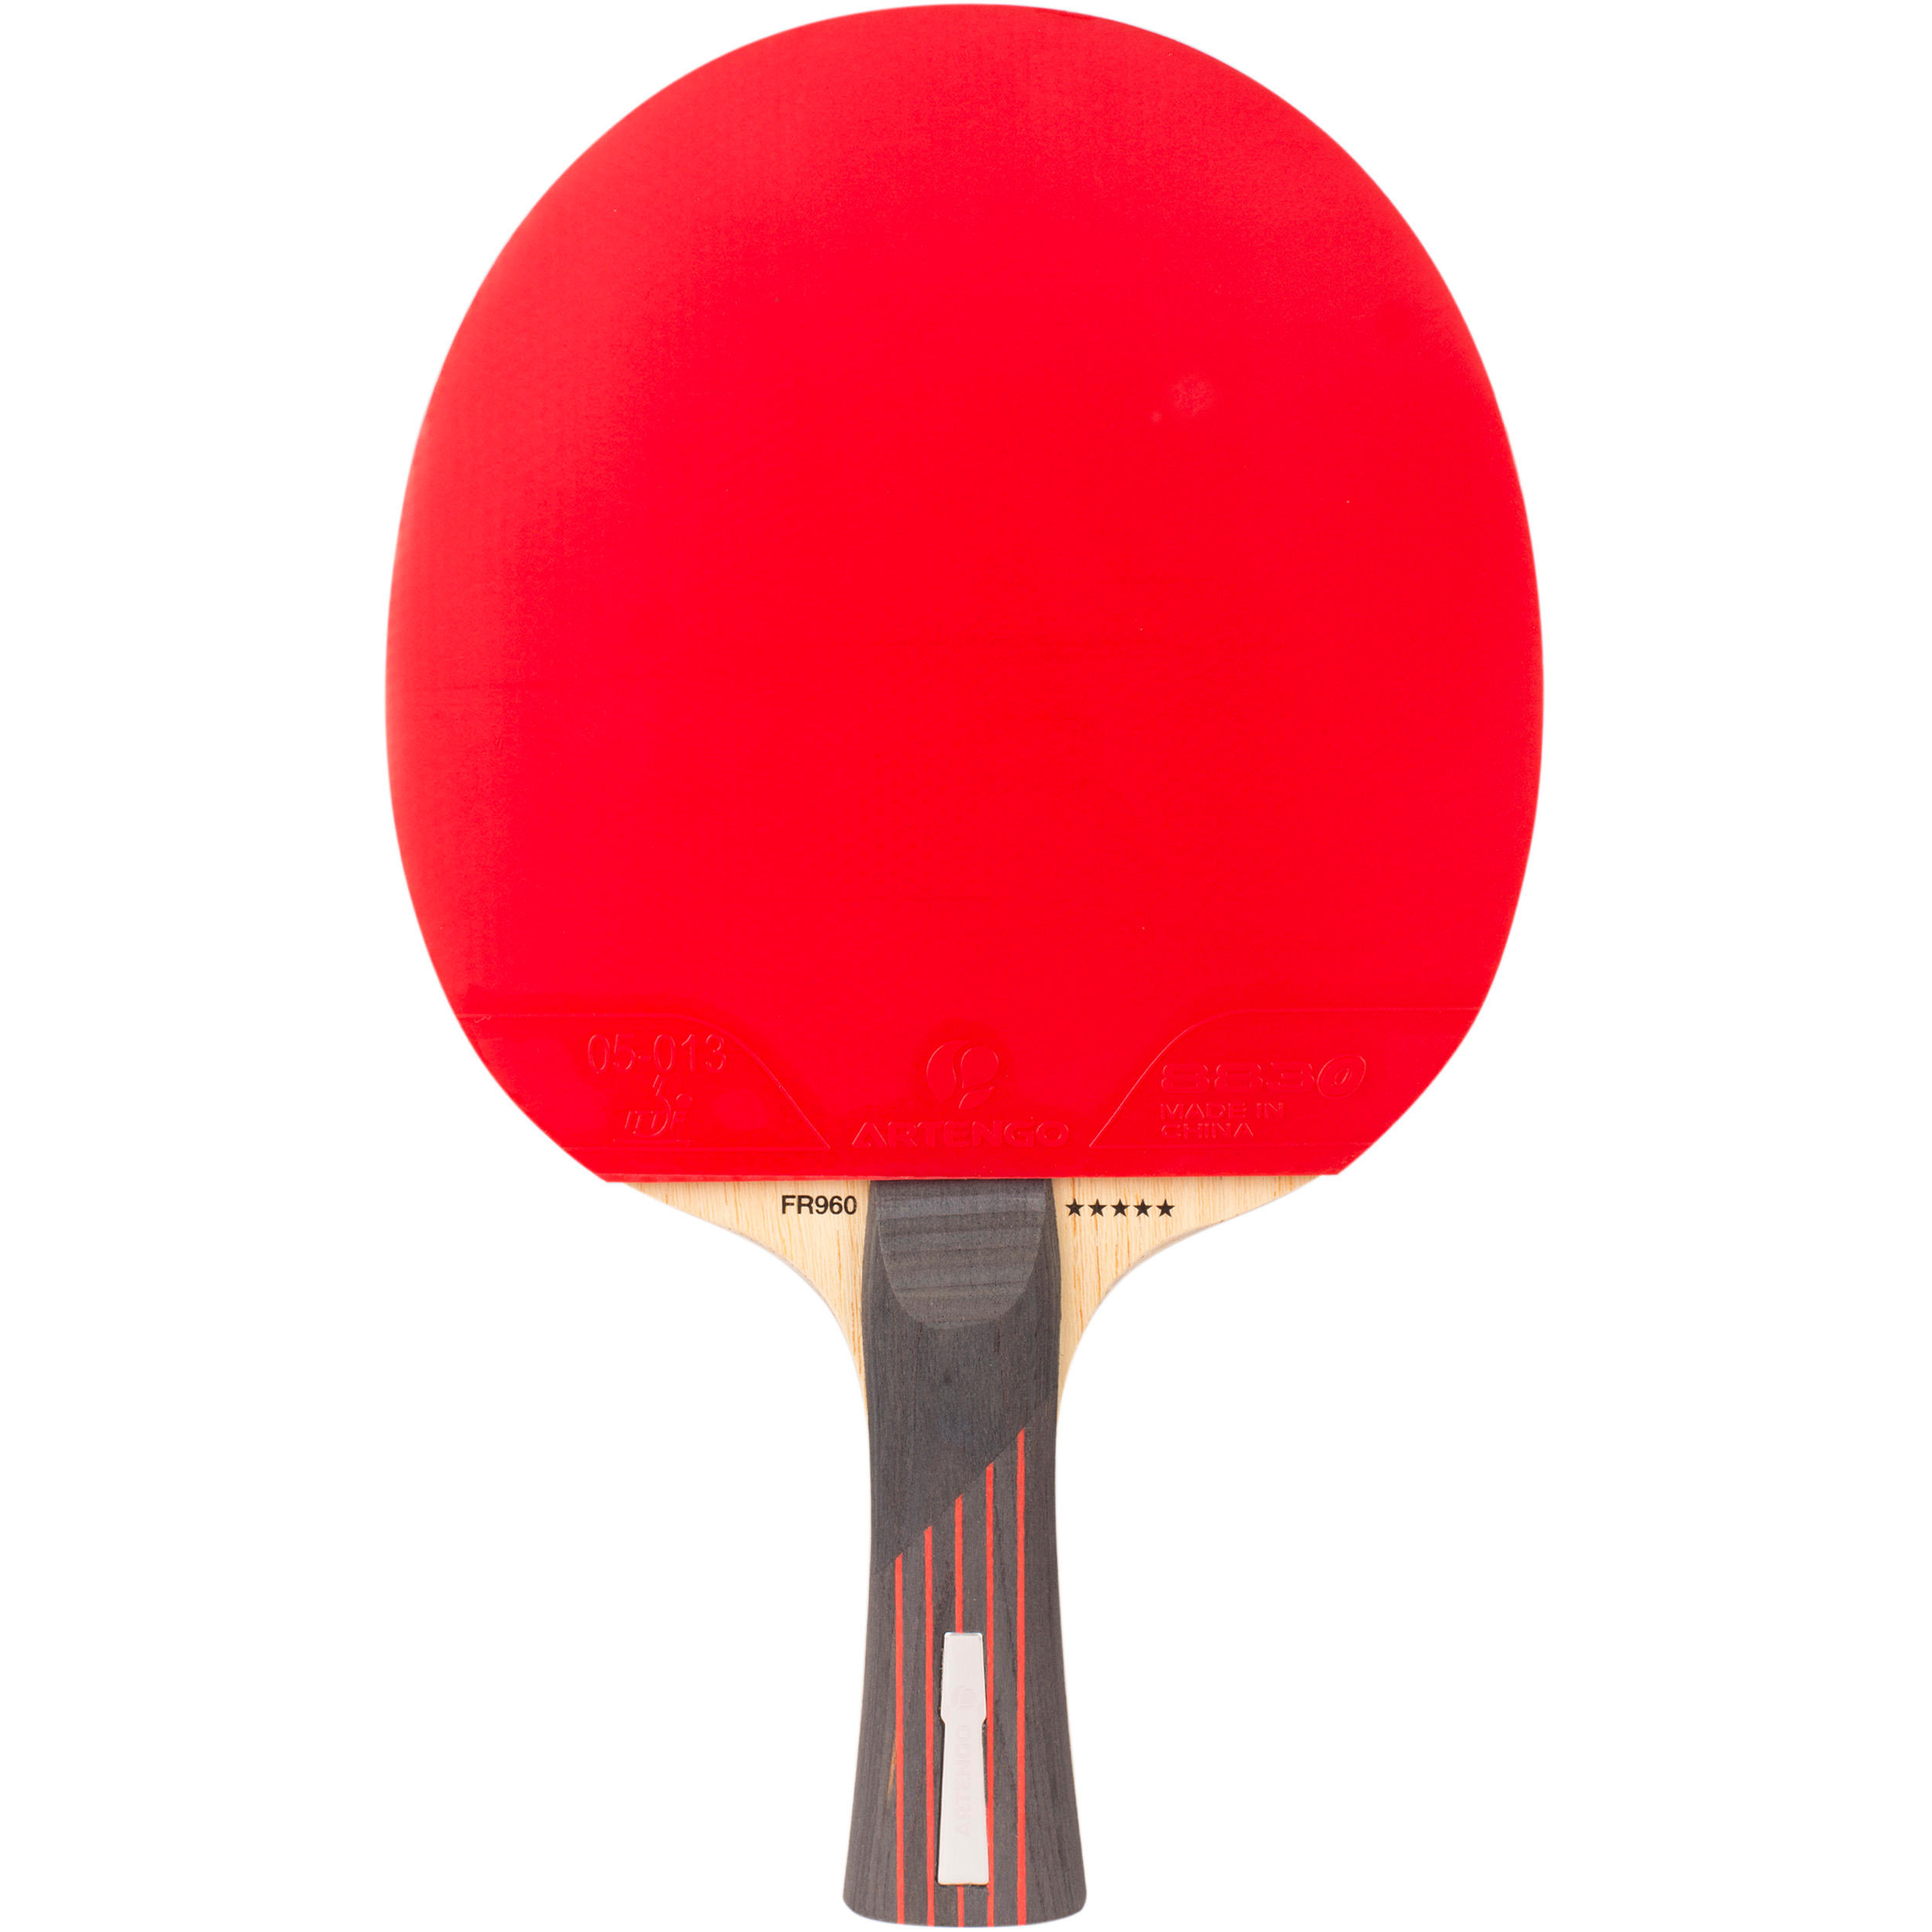 FR 960 5* Club Table Tennis Paddle